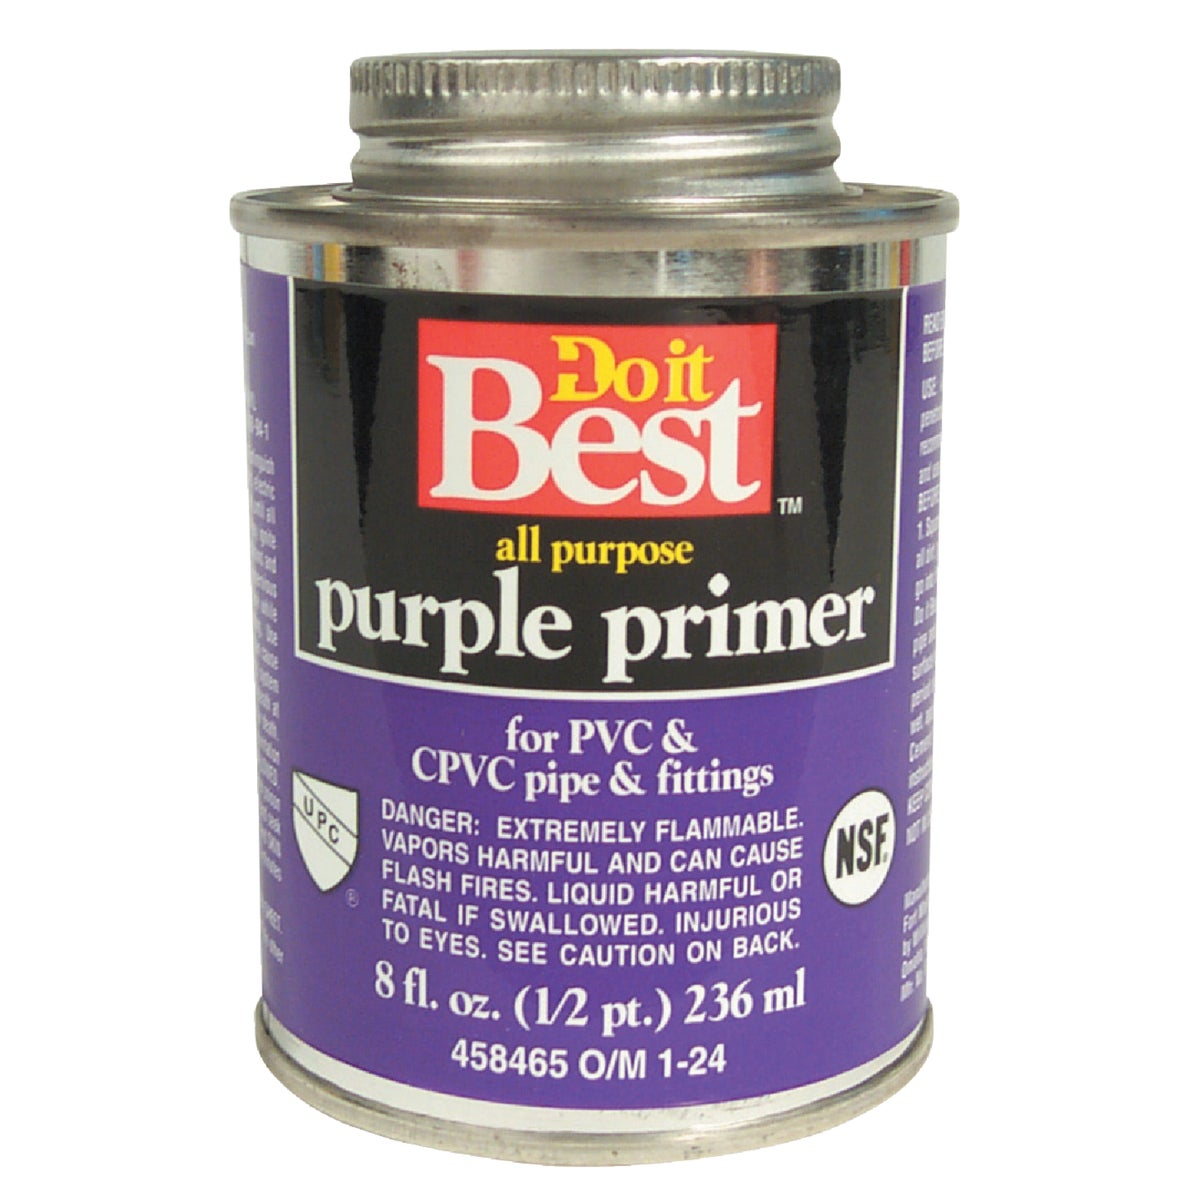 1/2PINT PURPLE PRIMER - 019066 by Wm H Harvey Co